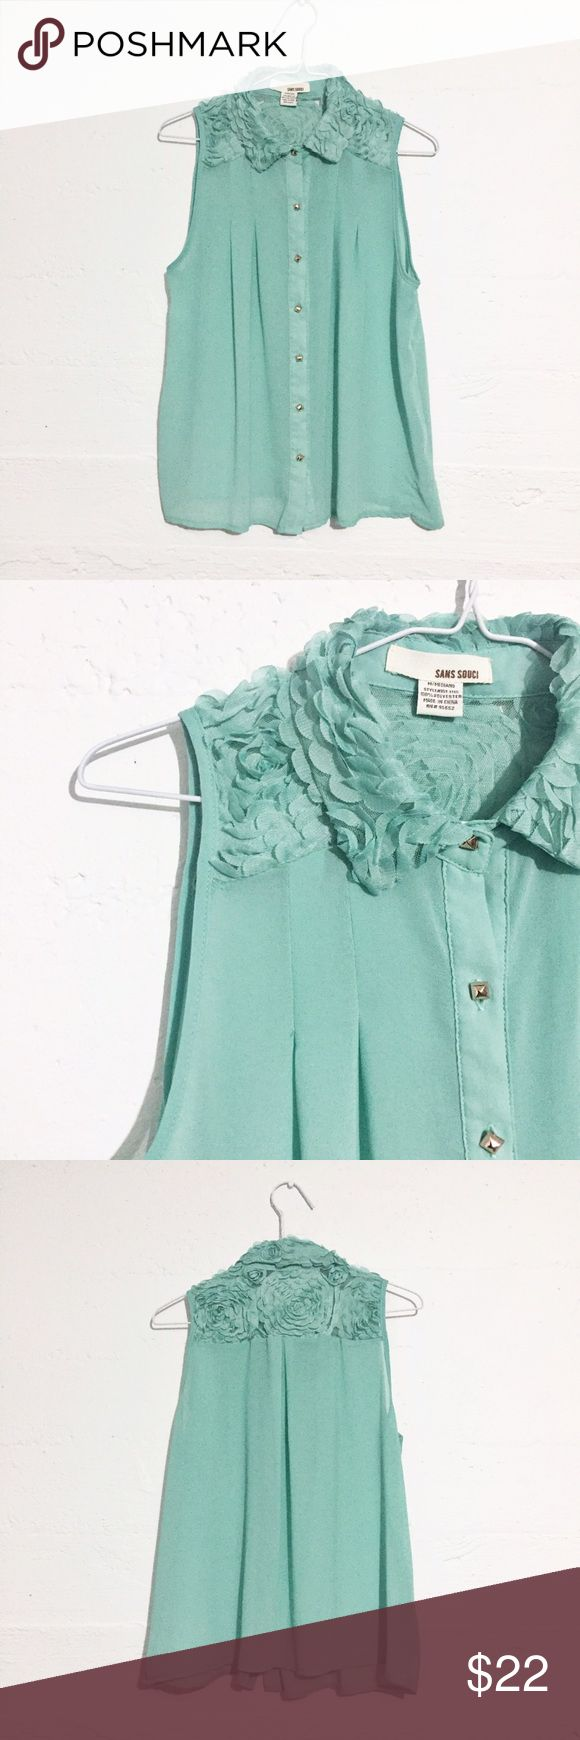 Sleeveless Collared Blouse Mint colored sleeveless collared top with rosette details along shoulders and collar. Sans Souci Tops Blouses